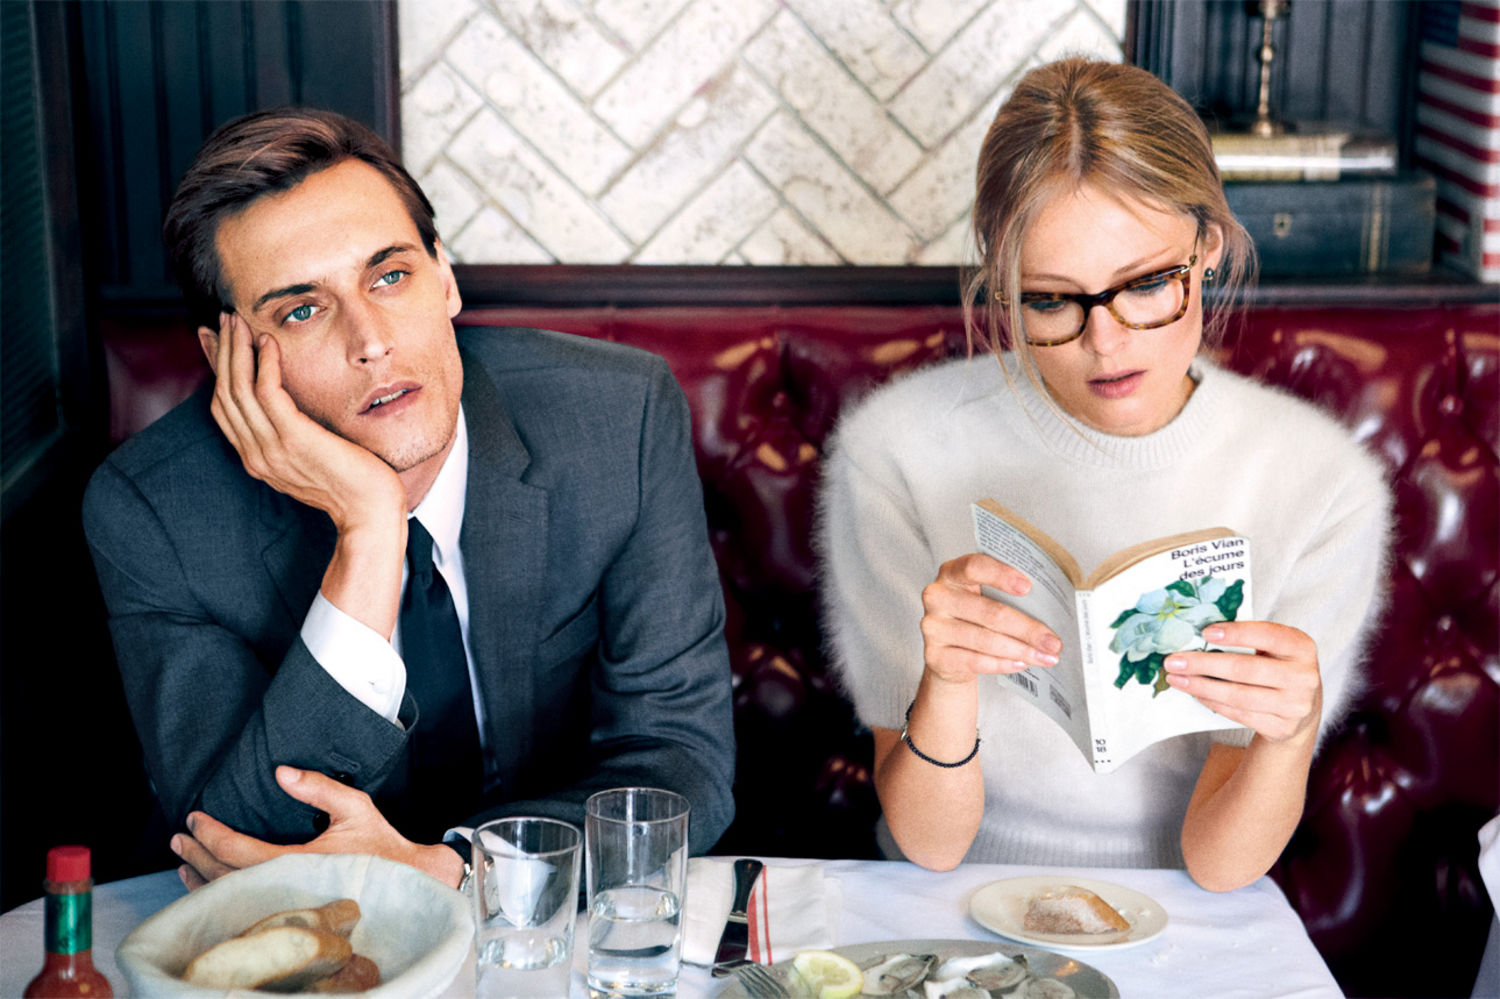 Some Reasons Sugar Babies Don't Want To Have A Relationship With You